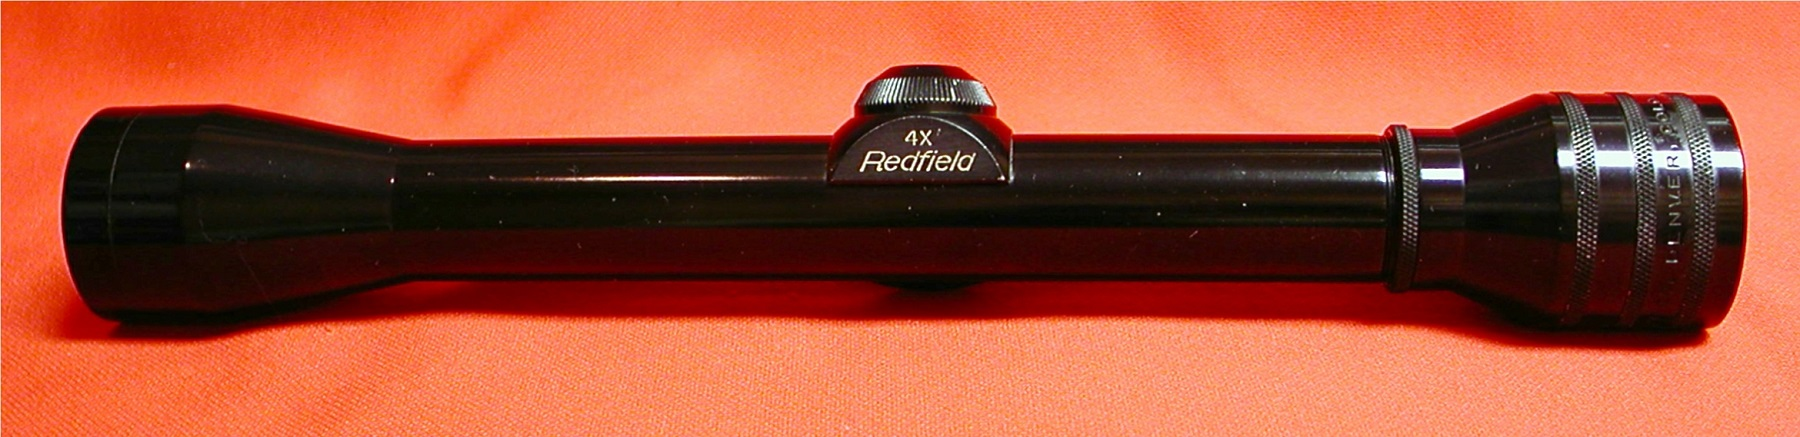 W0000S38_Redfield_Scope_1.jpg